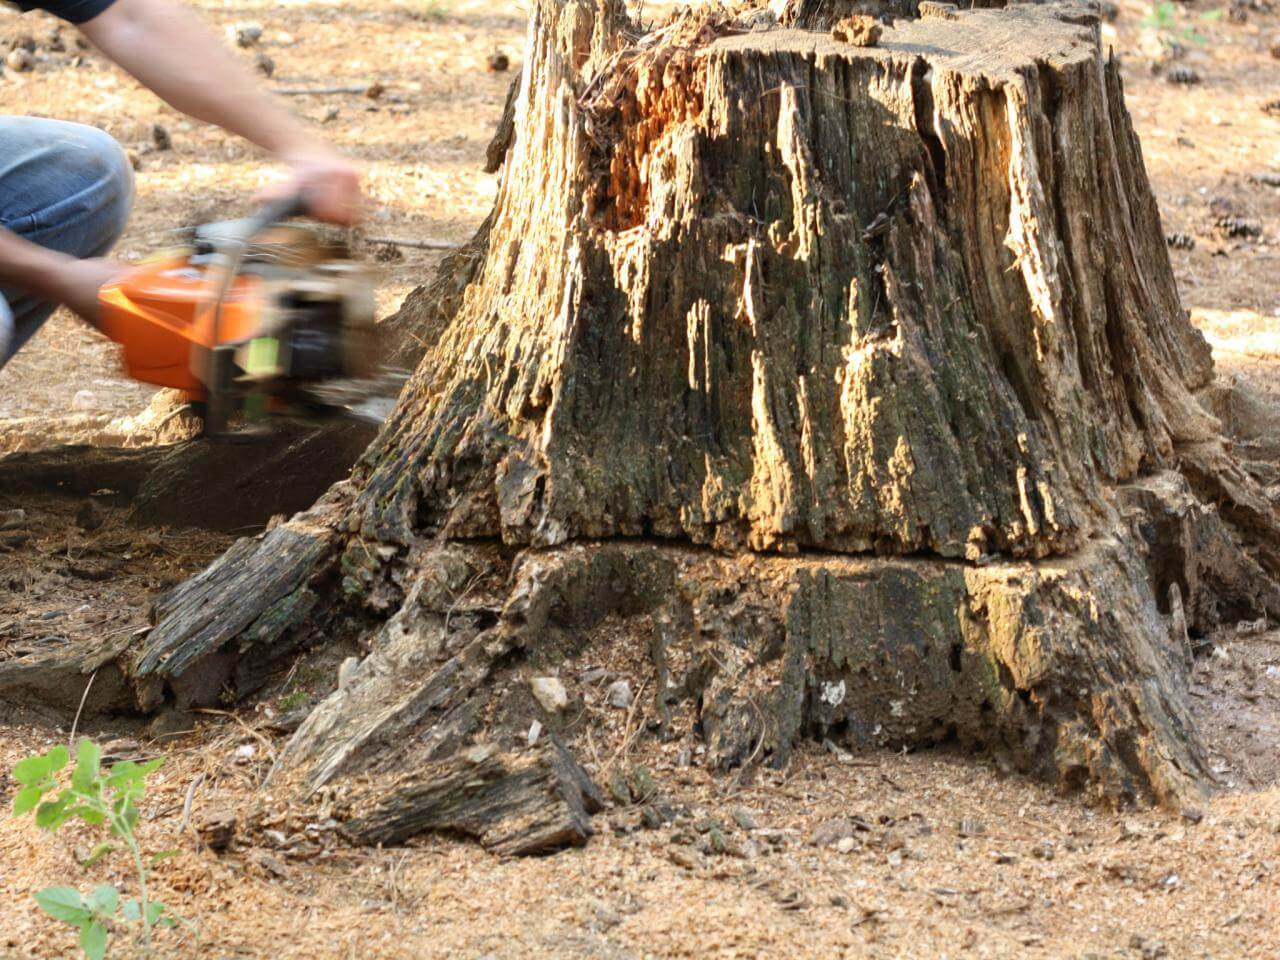 Stump Removal-Chula Vista CA Tree Trimming and Stump Grinding Services-We Offer Tree Trimming Services, Tree Removal, Tree Pruning, Tree Cutting, Residential and Commercial Tree Trimming Services, Storm Damage, Emergency Tree Removal, Land Clearing, Tree Companies, Tree Care Service, Stump Grinding, and we're the Best Tree Trimming Company Near You Guaranteed!